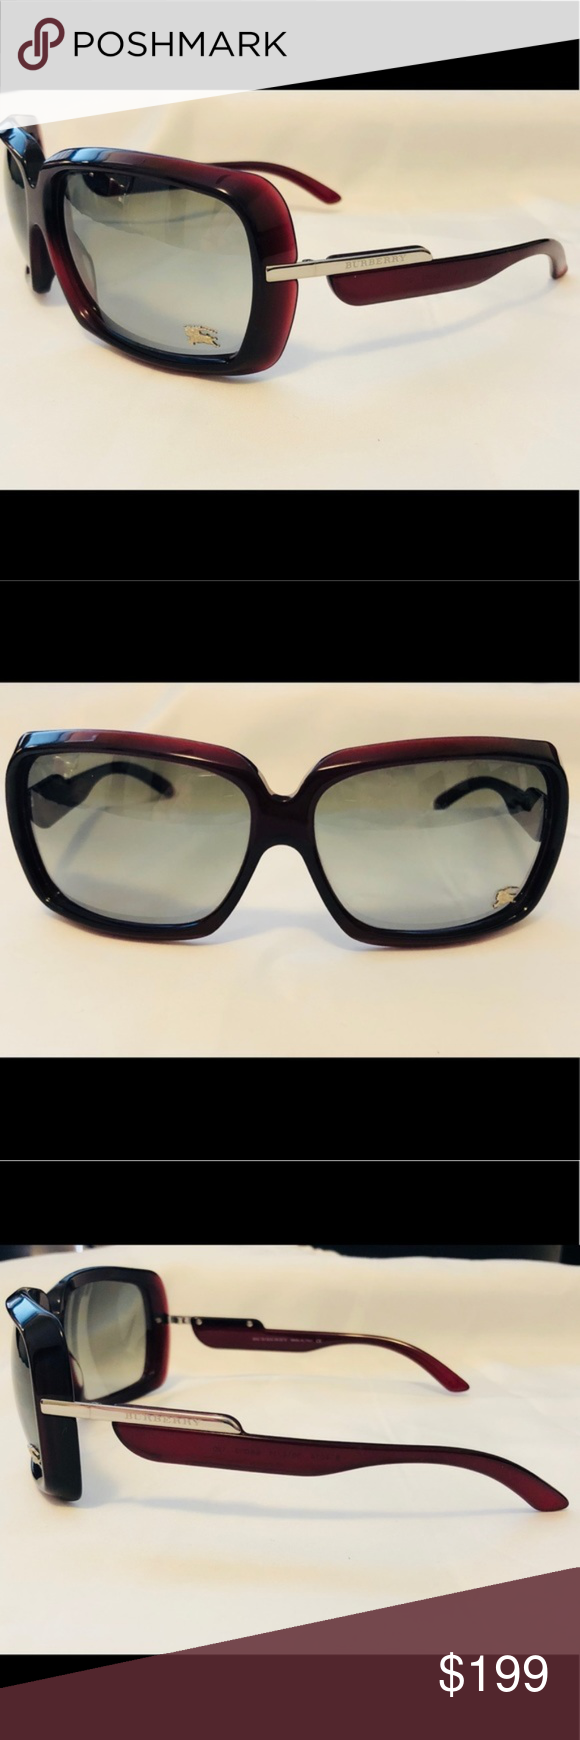 b28ce137fc5 New Burberry Oxblood Red Sunglasses 4014 New Burberry Oxblood Red  Sunglasses B4014 3014 11 They are lovely